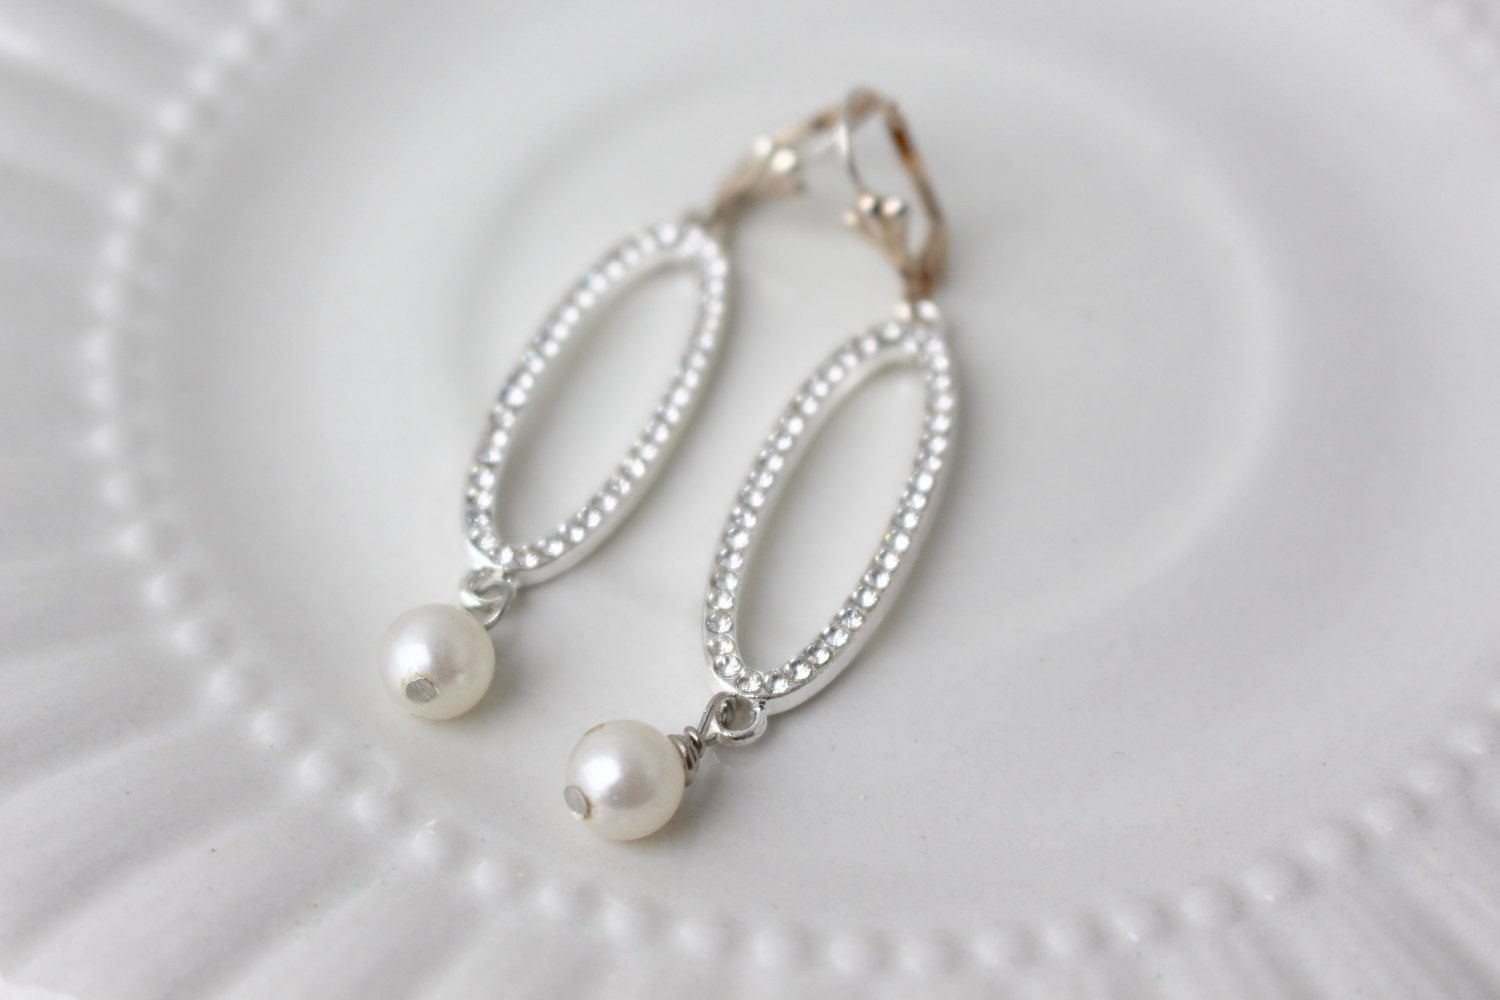 Bridal Rhinestone Pearl Earrings Dangle Oval Up Cycled Cream Vintage Lever  Back Silver Repurposed Wedding Jewelry Bridesmaid Gift Drop Bead